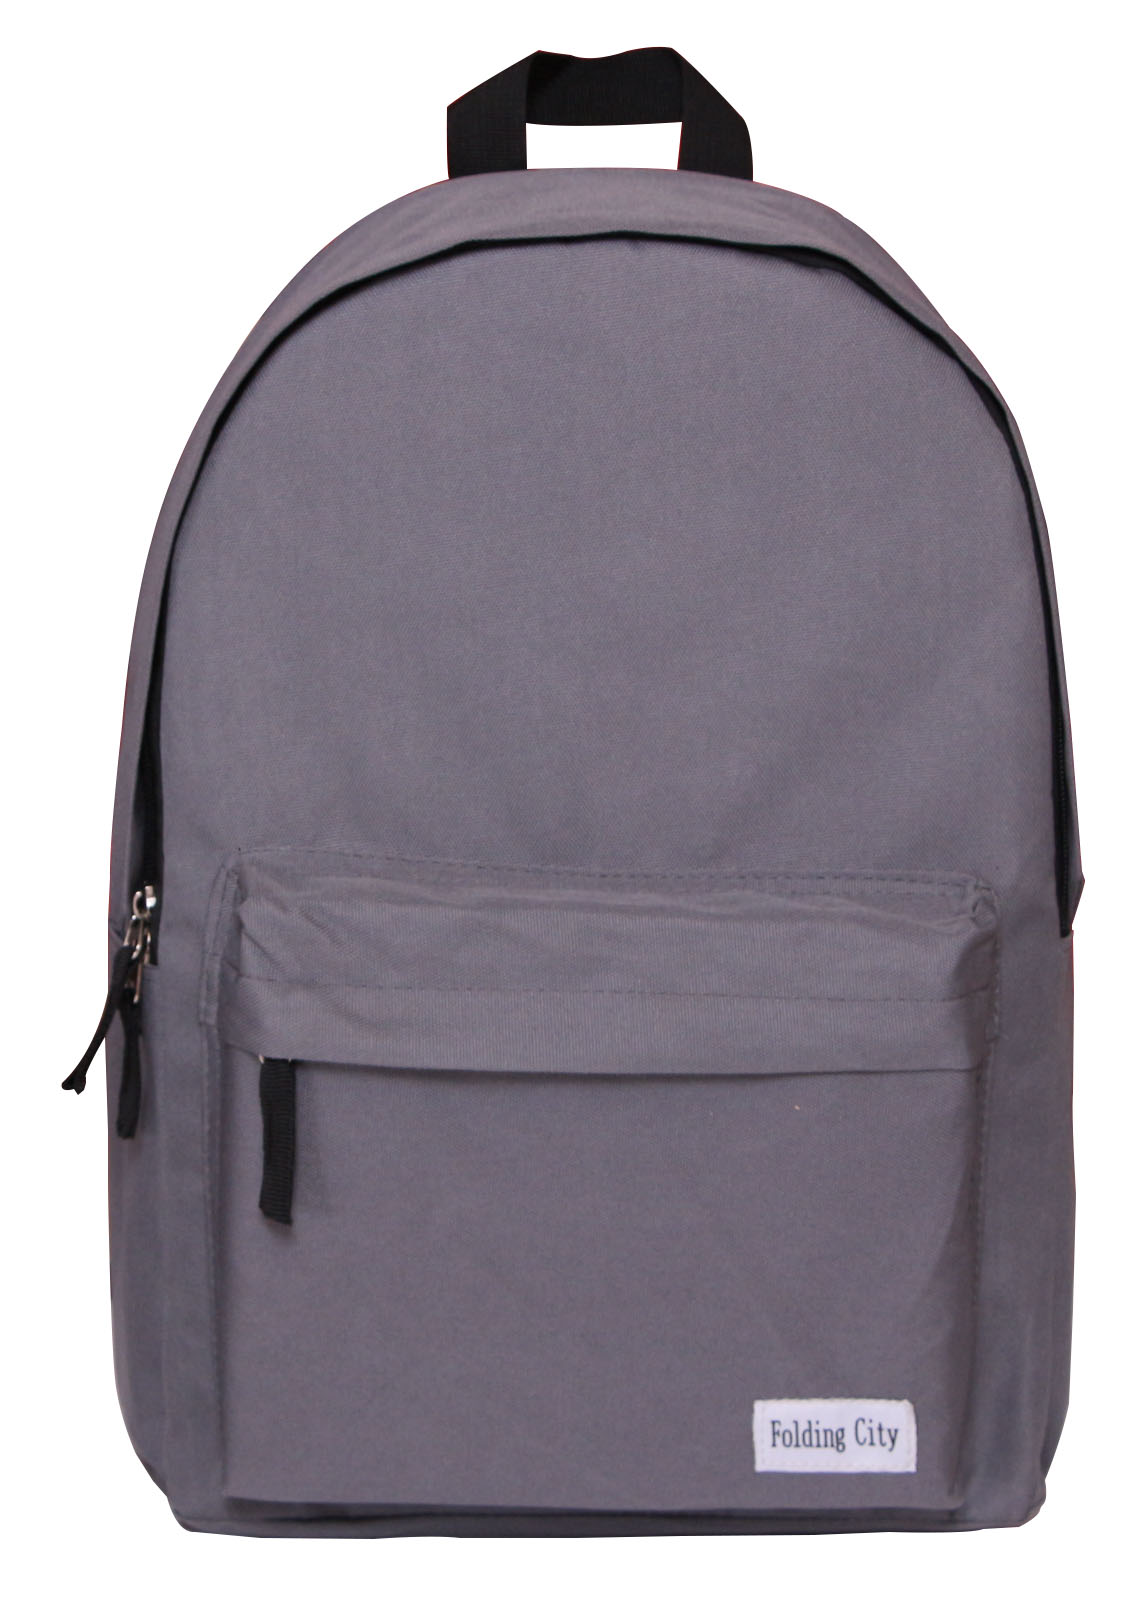 Backpack For Men Teenagers Lightweight Roomy School Bag Deep Blue